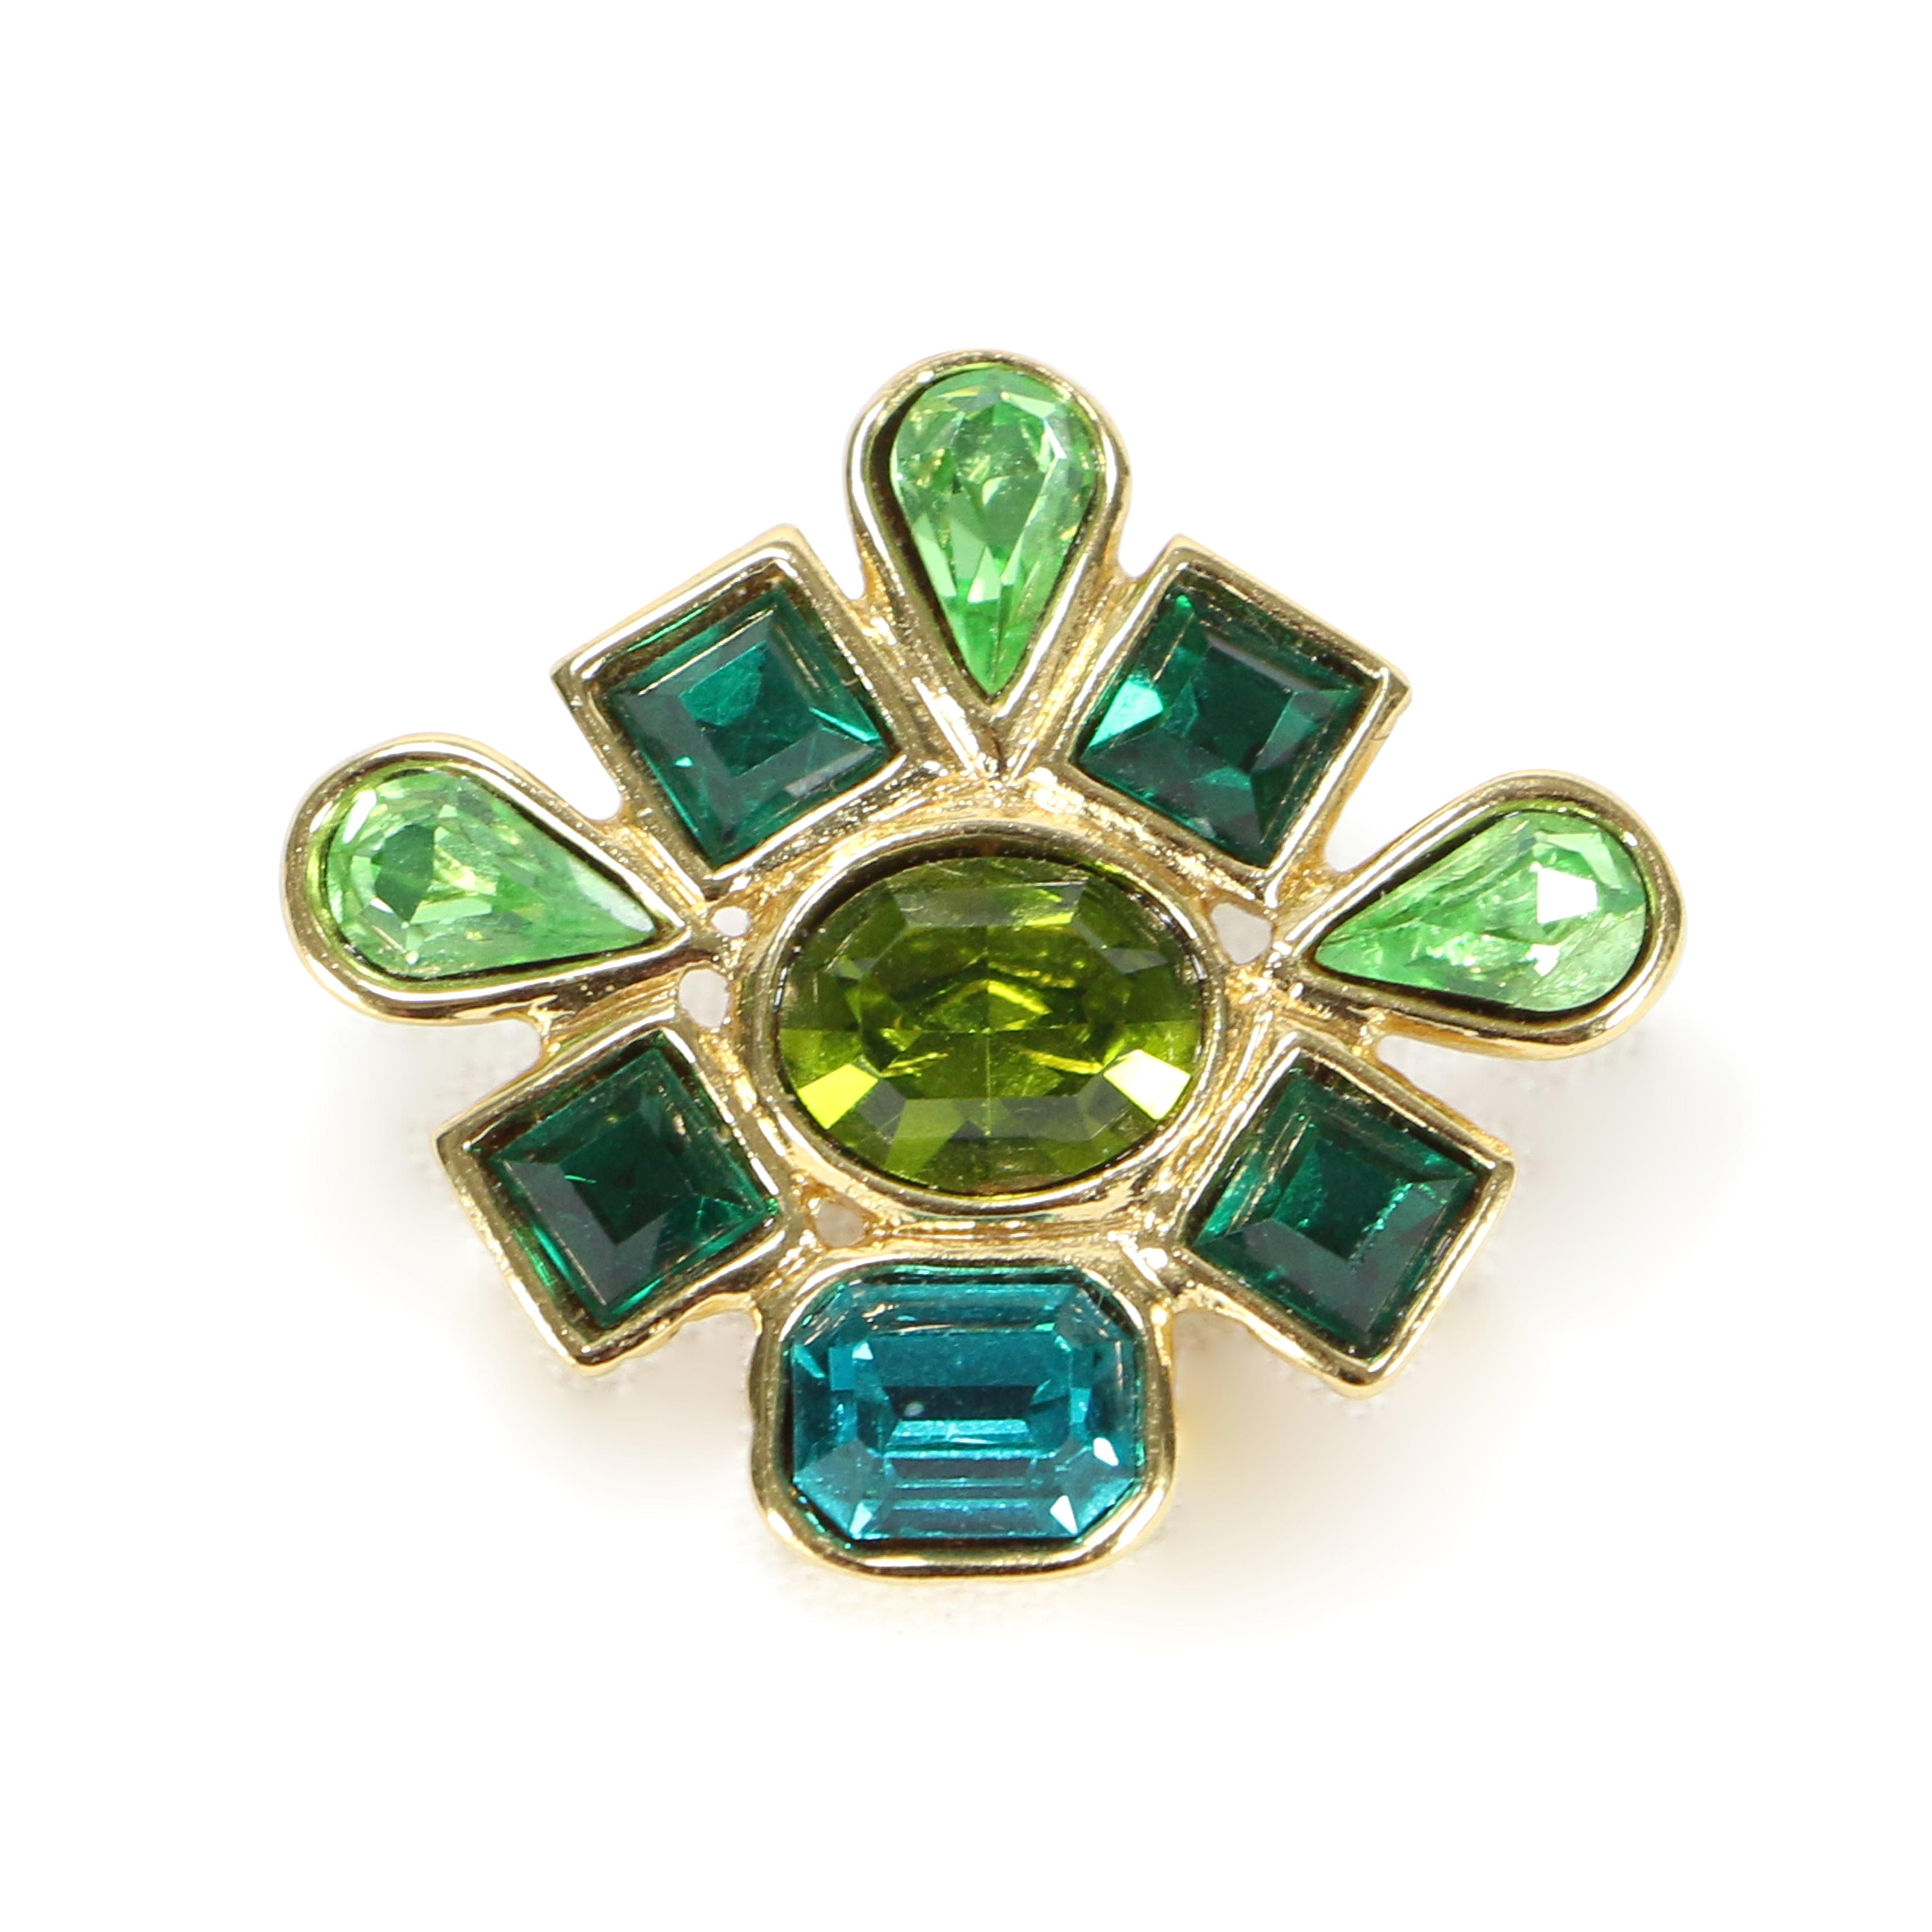 b99edea4dca Authentic Vintage Yves Saint Laurent Multi Crystal Brooch (TFC-203-00037) -  THE FIFTH COLLECTION